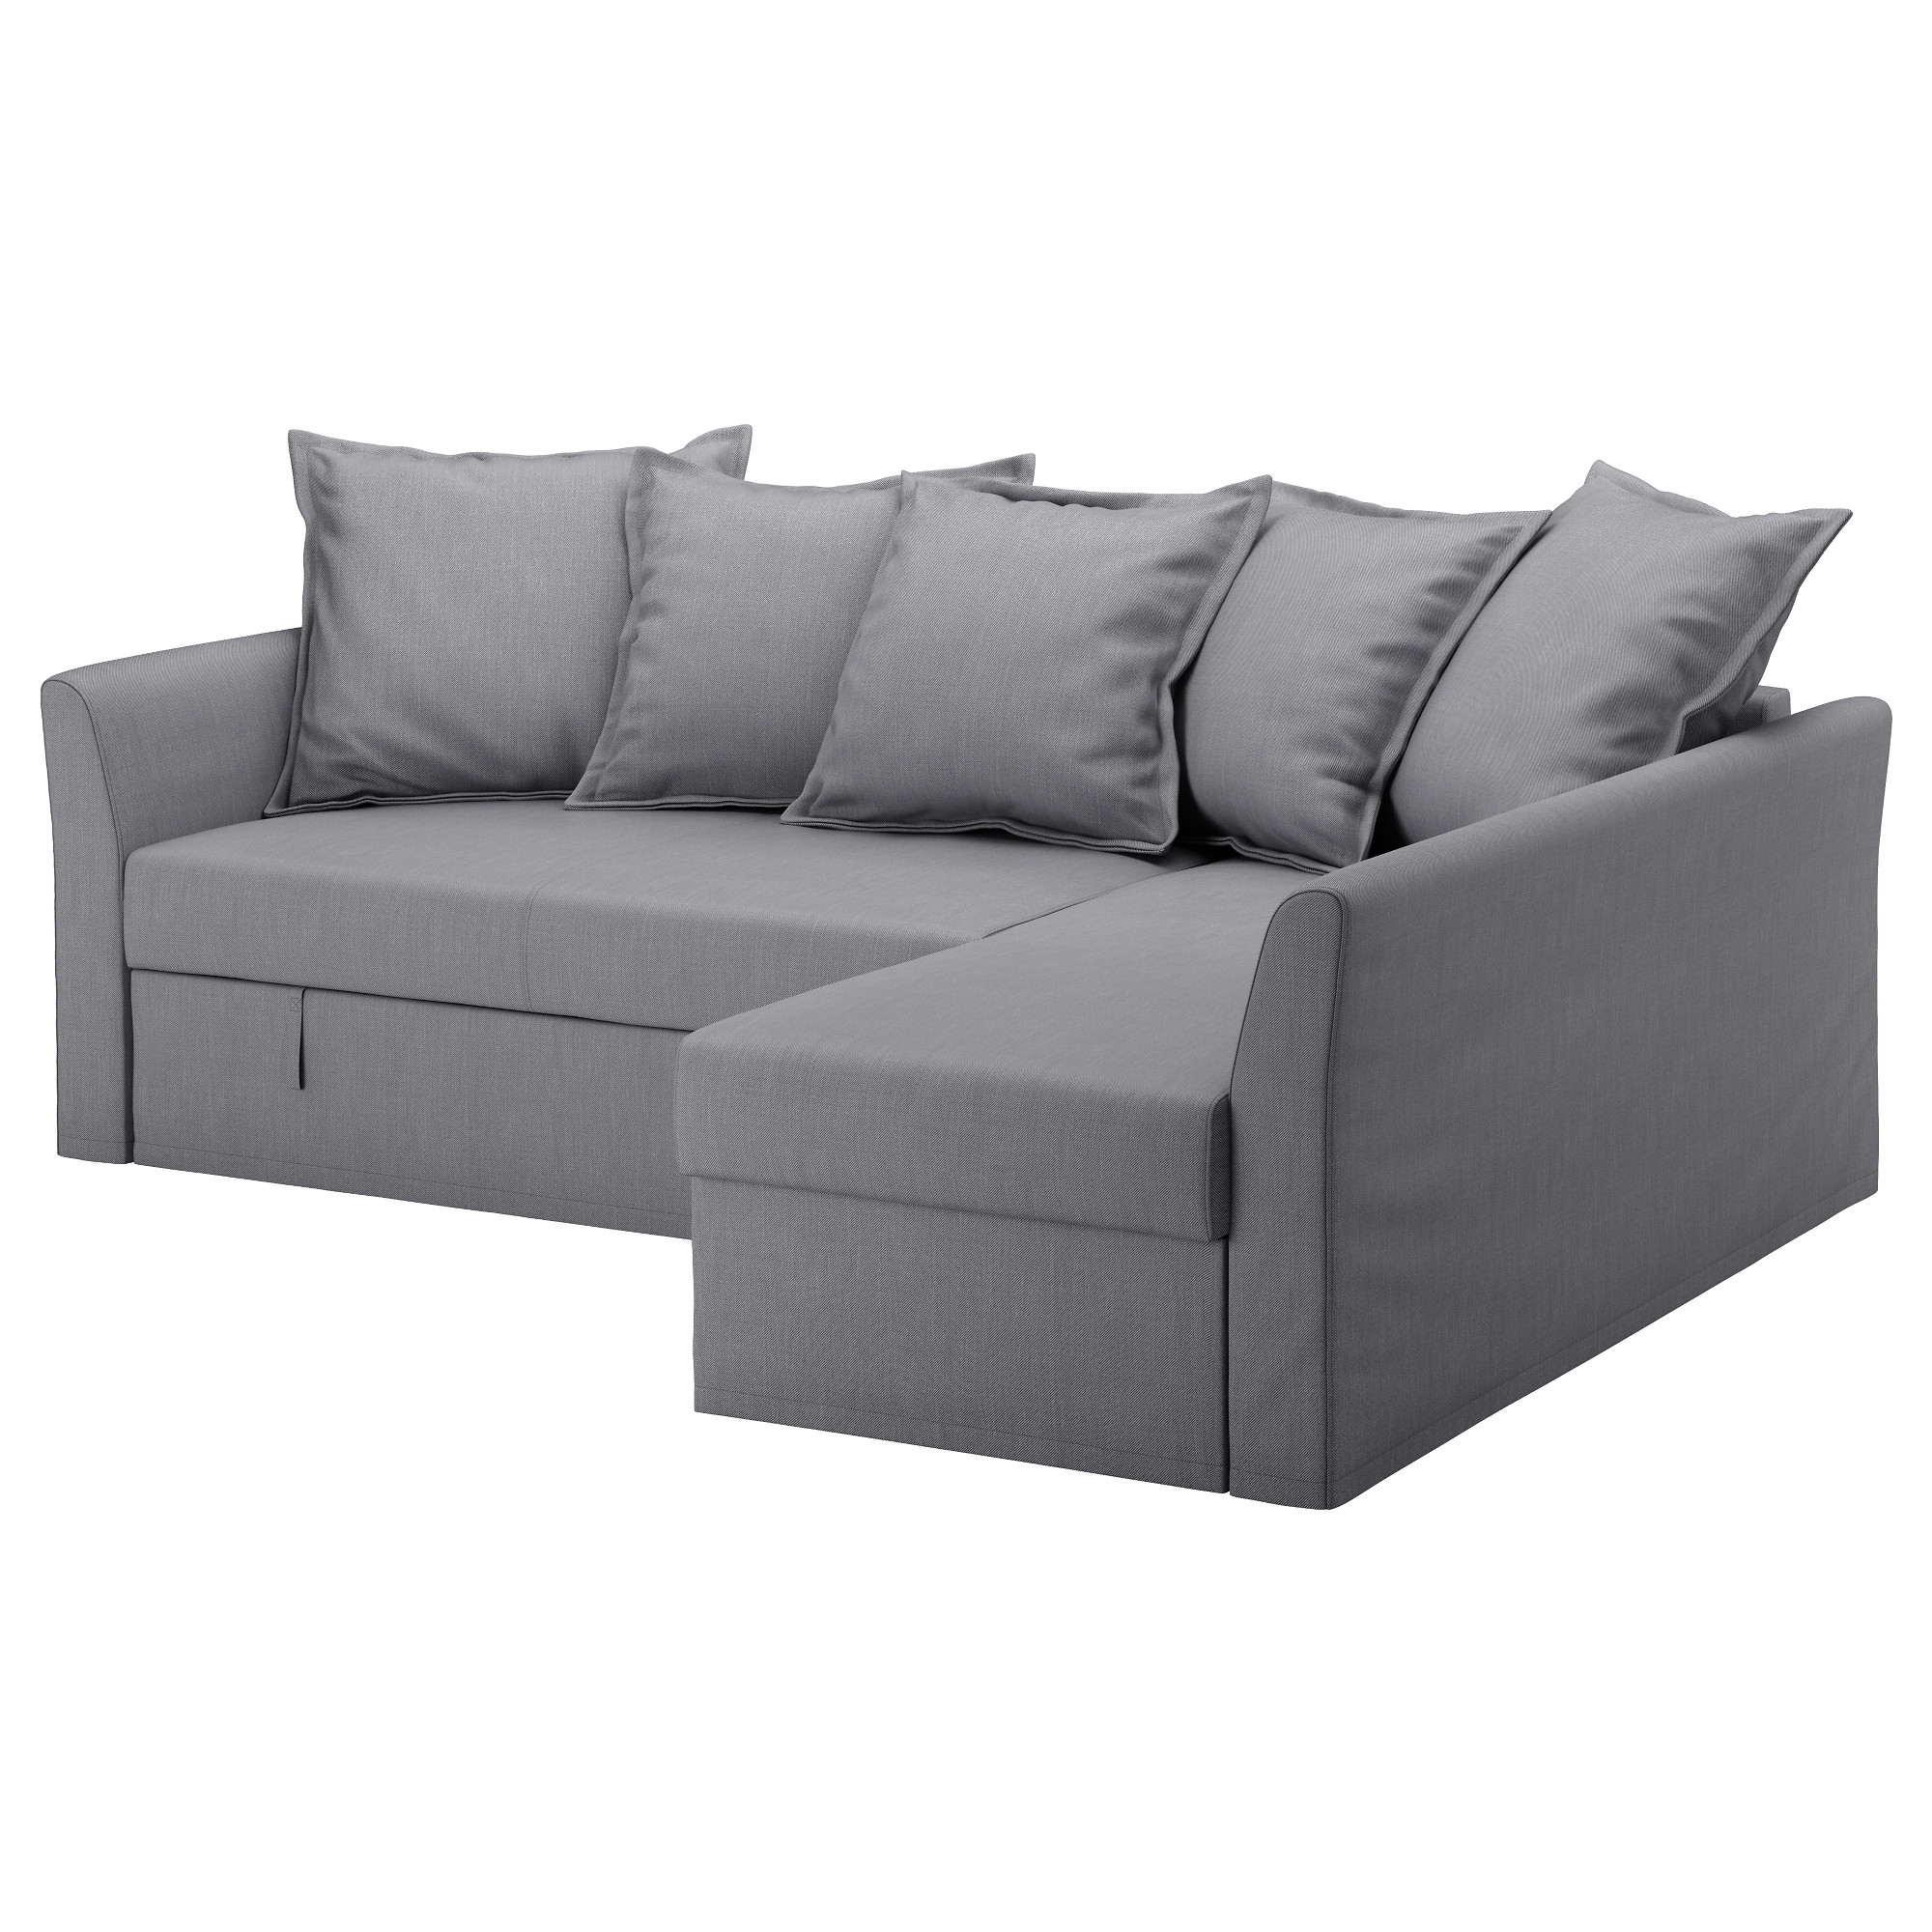 Holmsund Corner Sofa Bed – Nordvalla Beige – Ikea Throughout Ikea Corner Sofas With Storage (View 9 of 10)